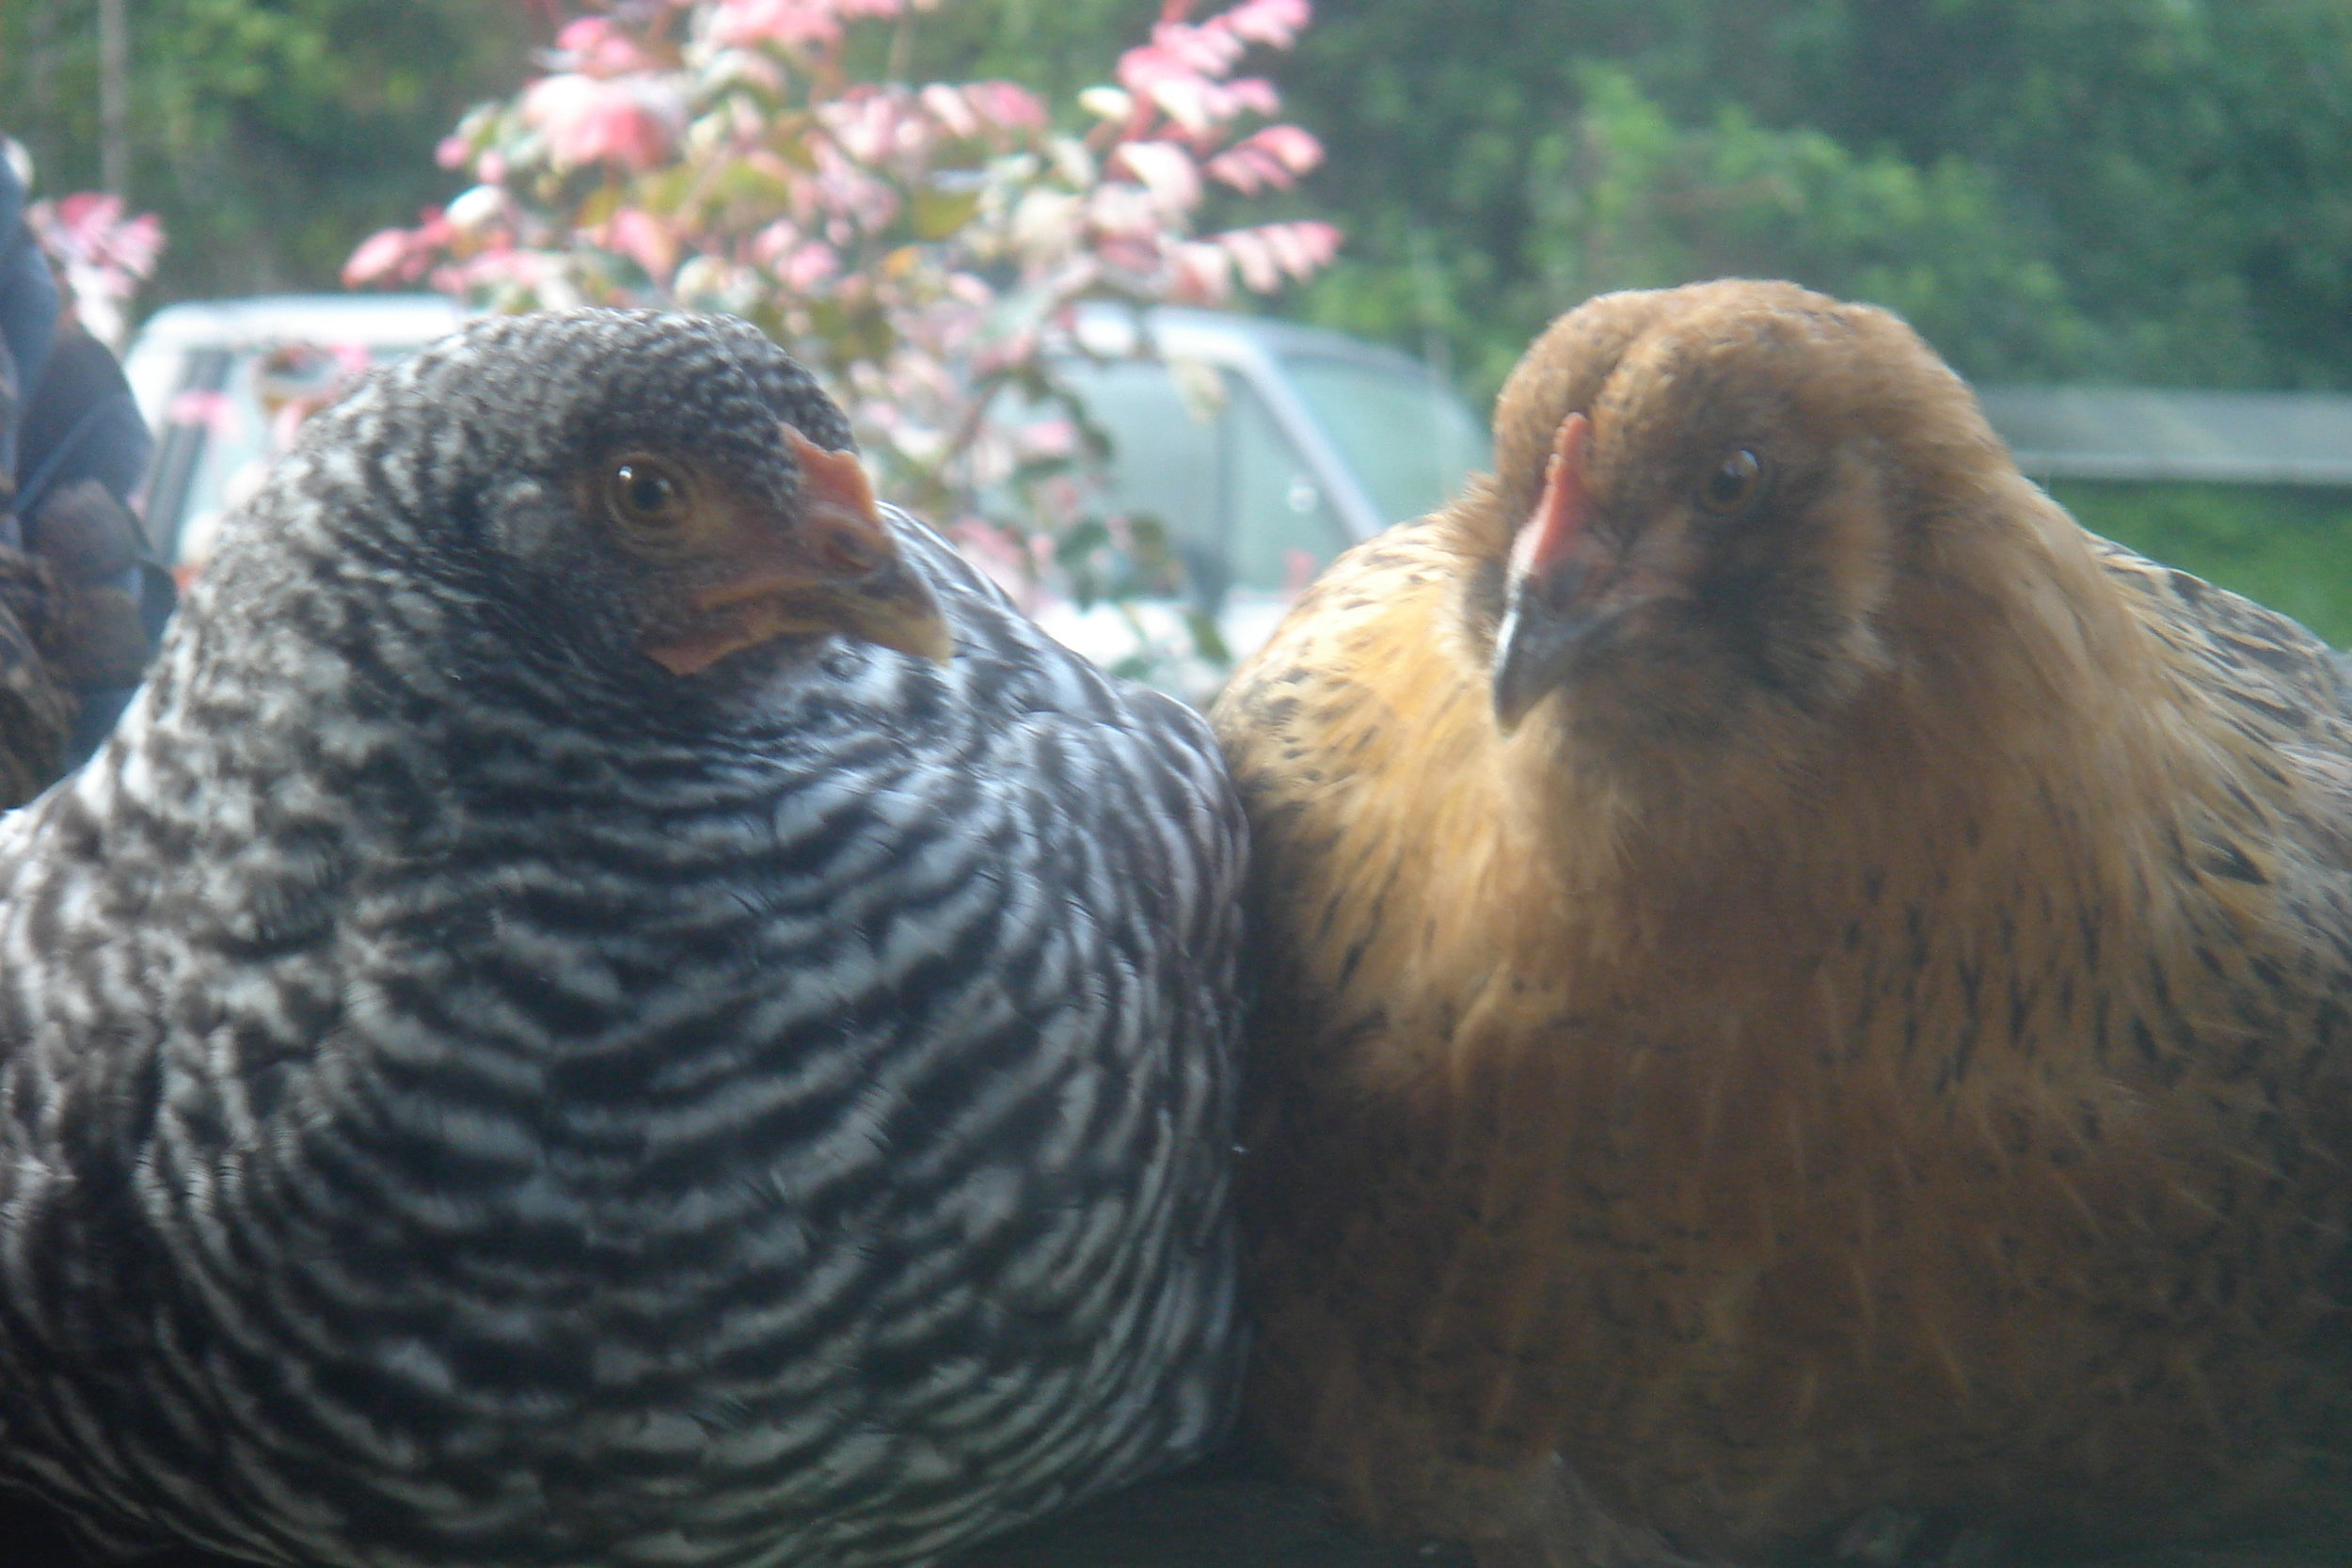 Two of our Hawaii girls - Motown and Ginger